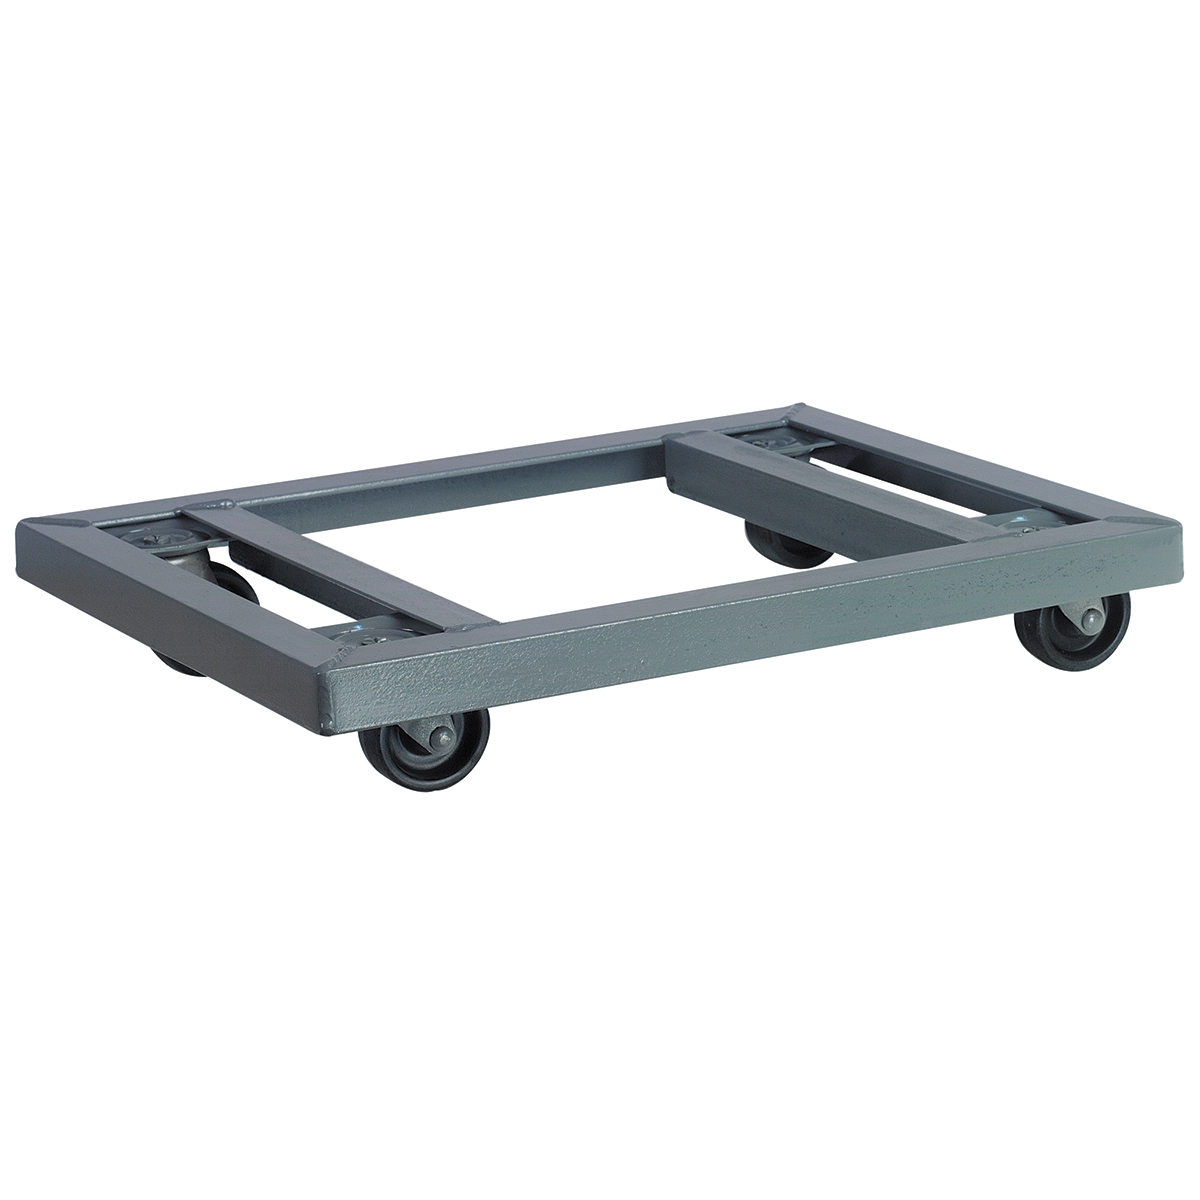 Item DISCONTINUED by Manufacturer.  Steel Dolly, 18x30, N/A4